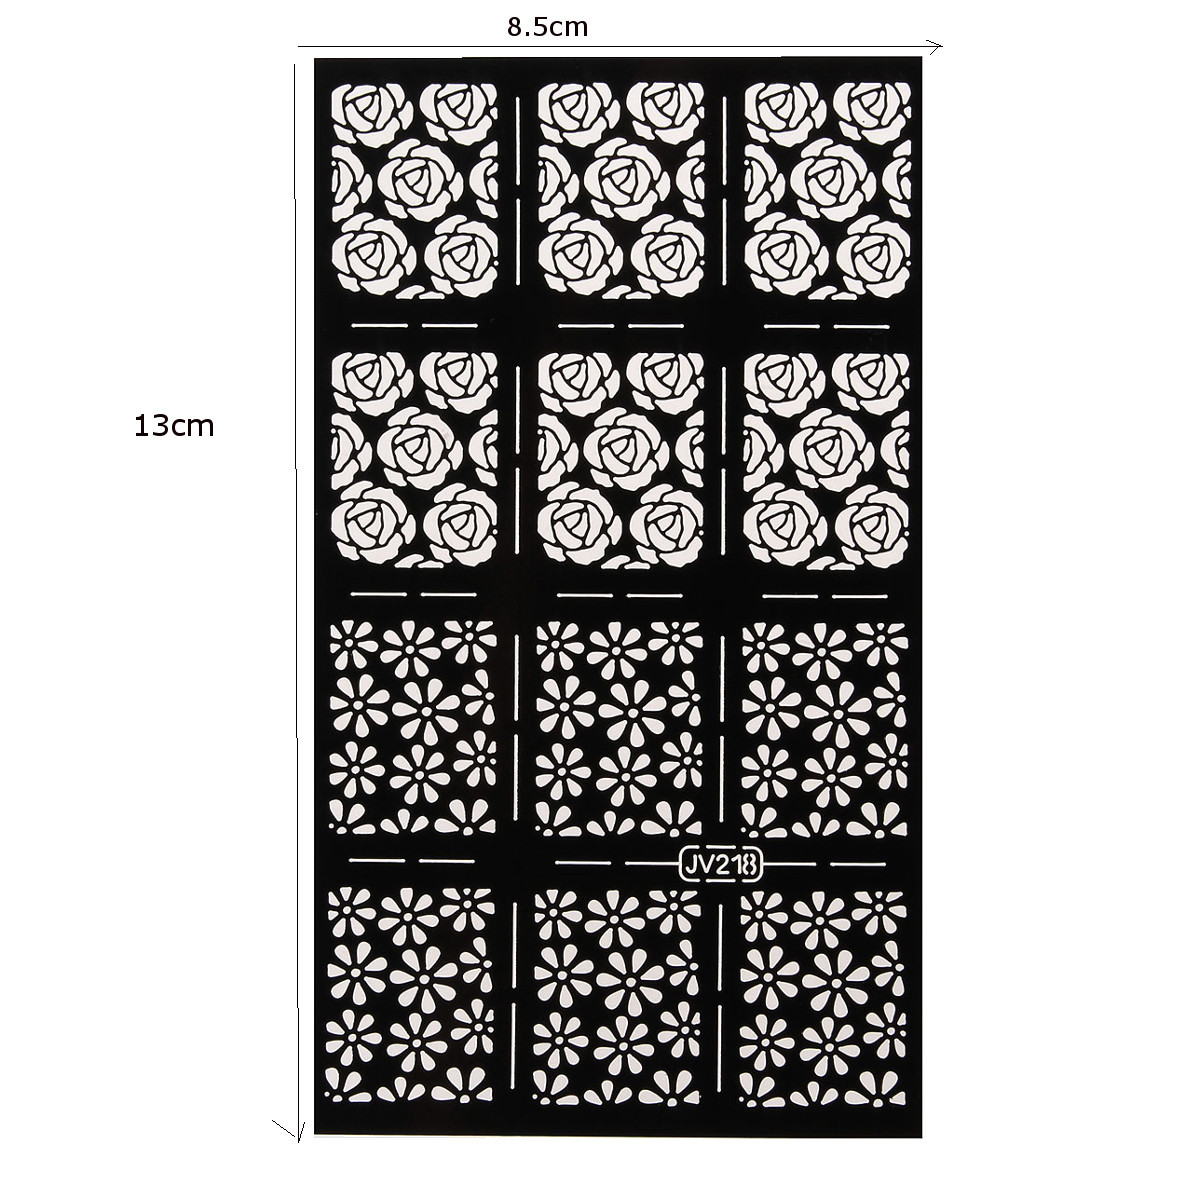 Nail Art Stencils Vinyl Hollow Stickers Decal Manicure Tips Stamp Template Decoration